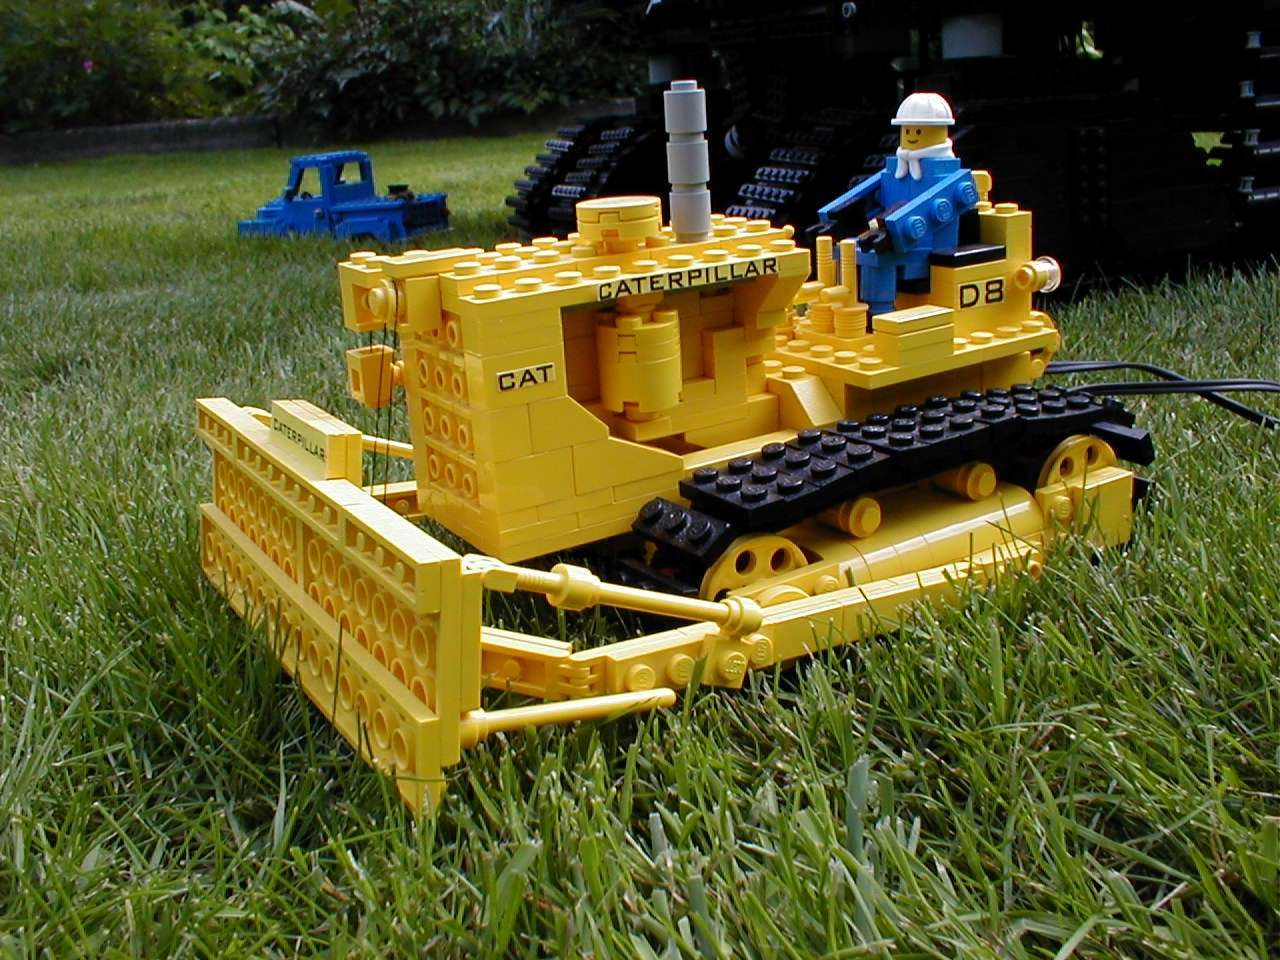 Caterpillar d8 photo - 3